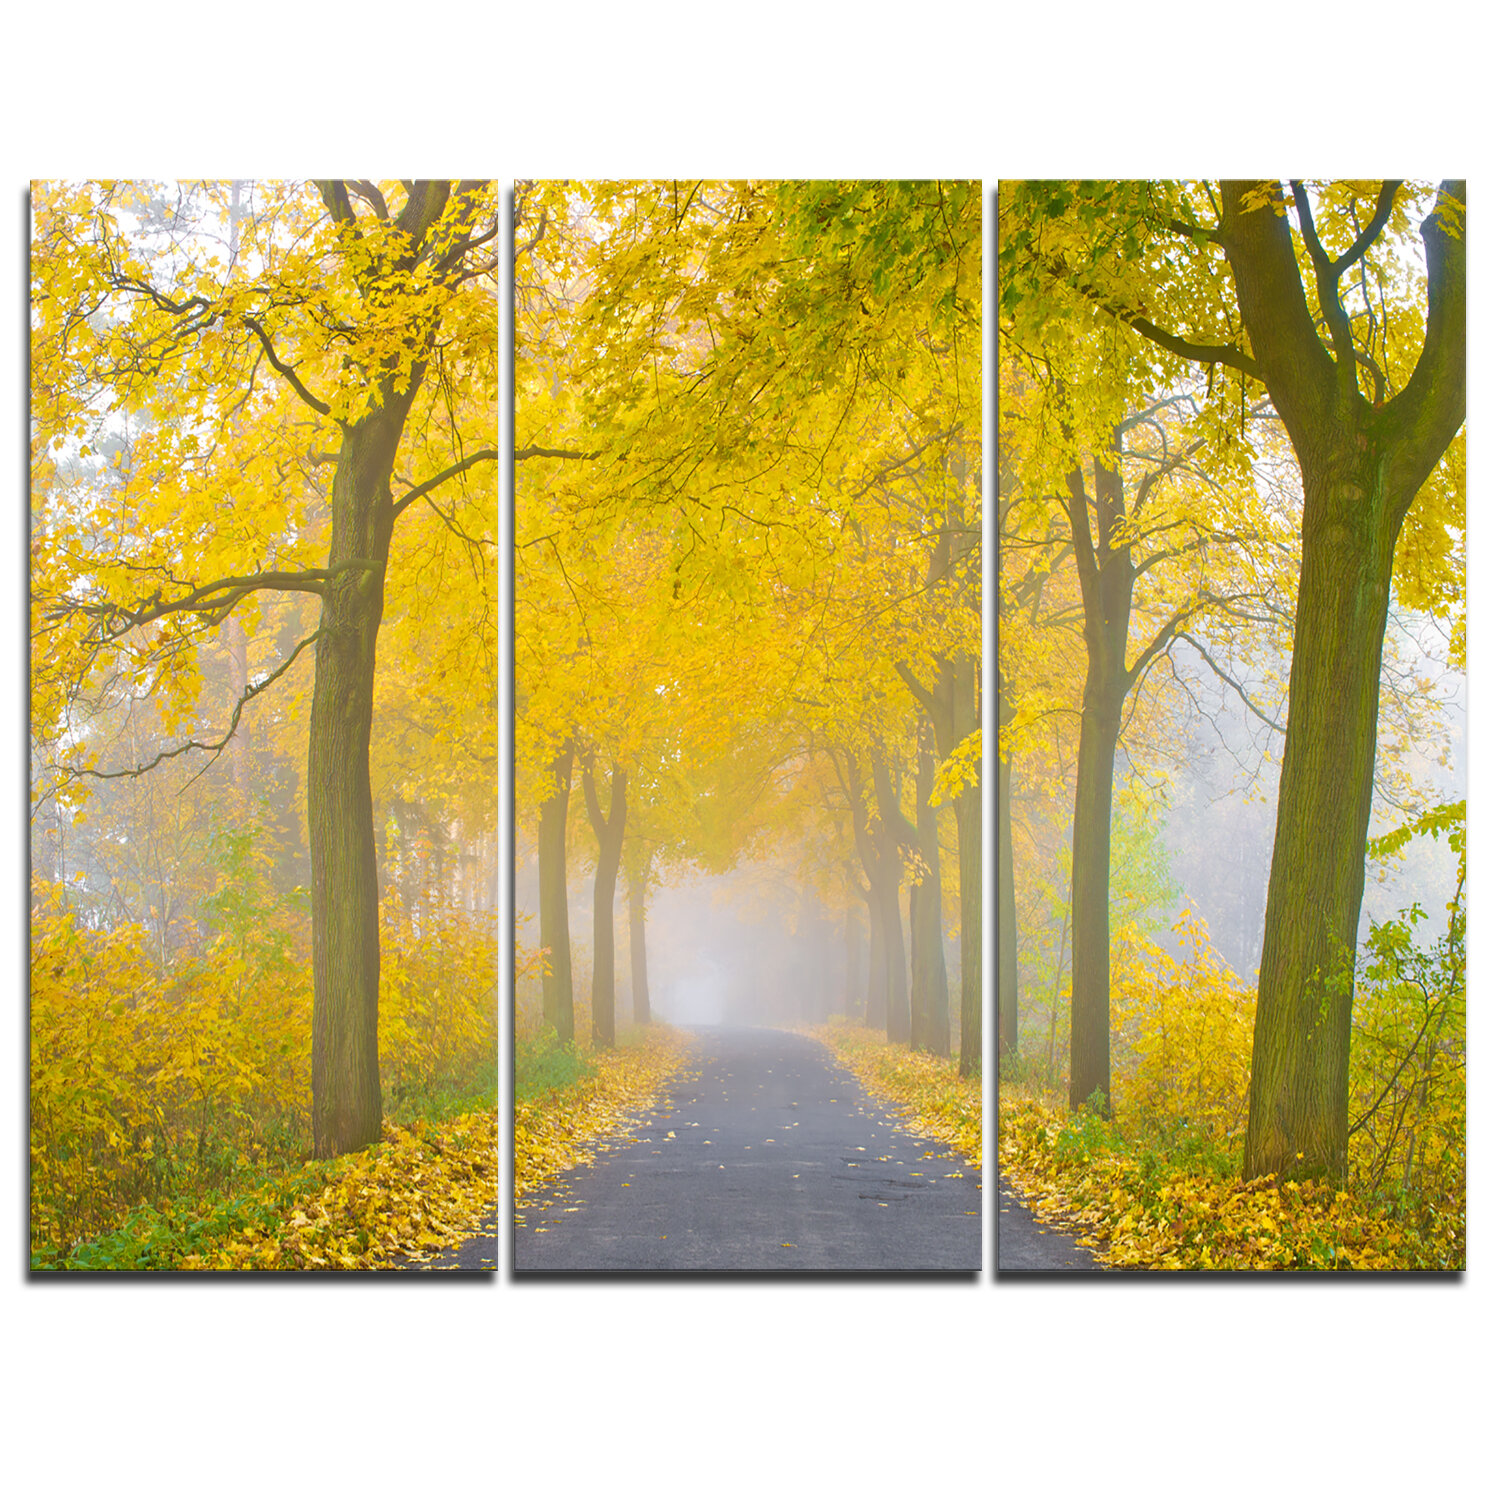 Designart Misty Road In Yellow Autumn Forest 3 Piece Graphic Art On Wrapped Canvas Set Wayfair